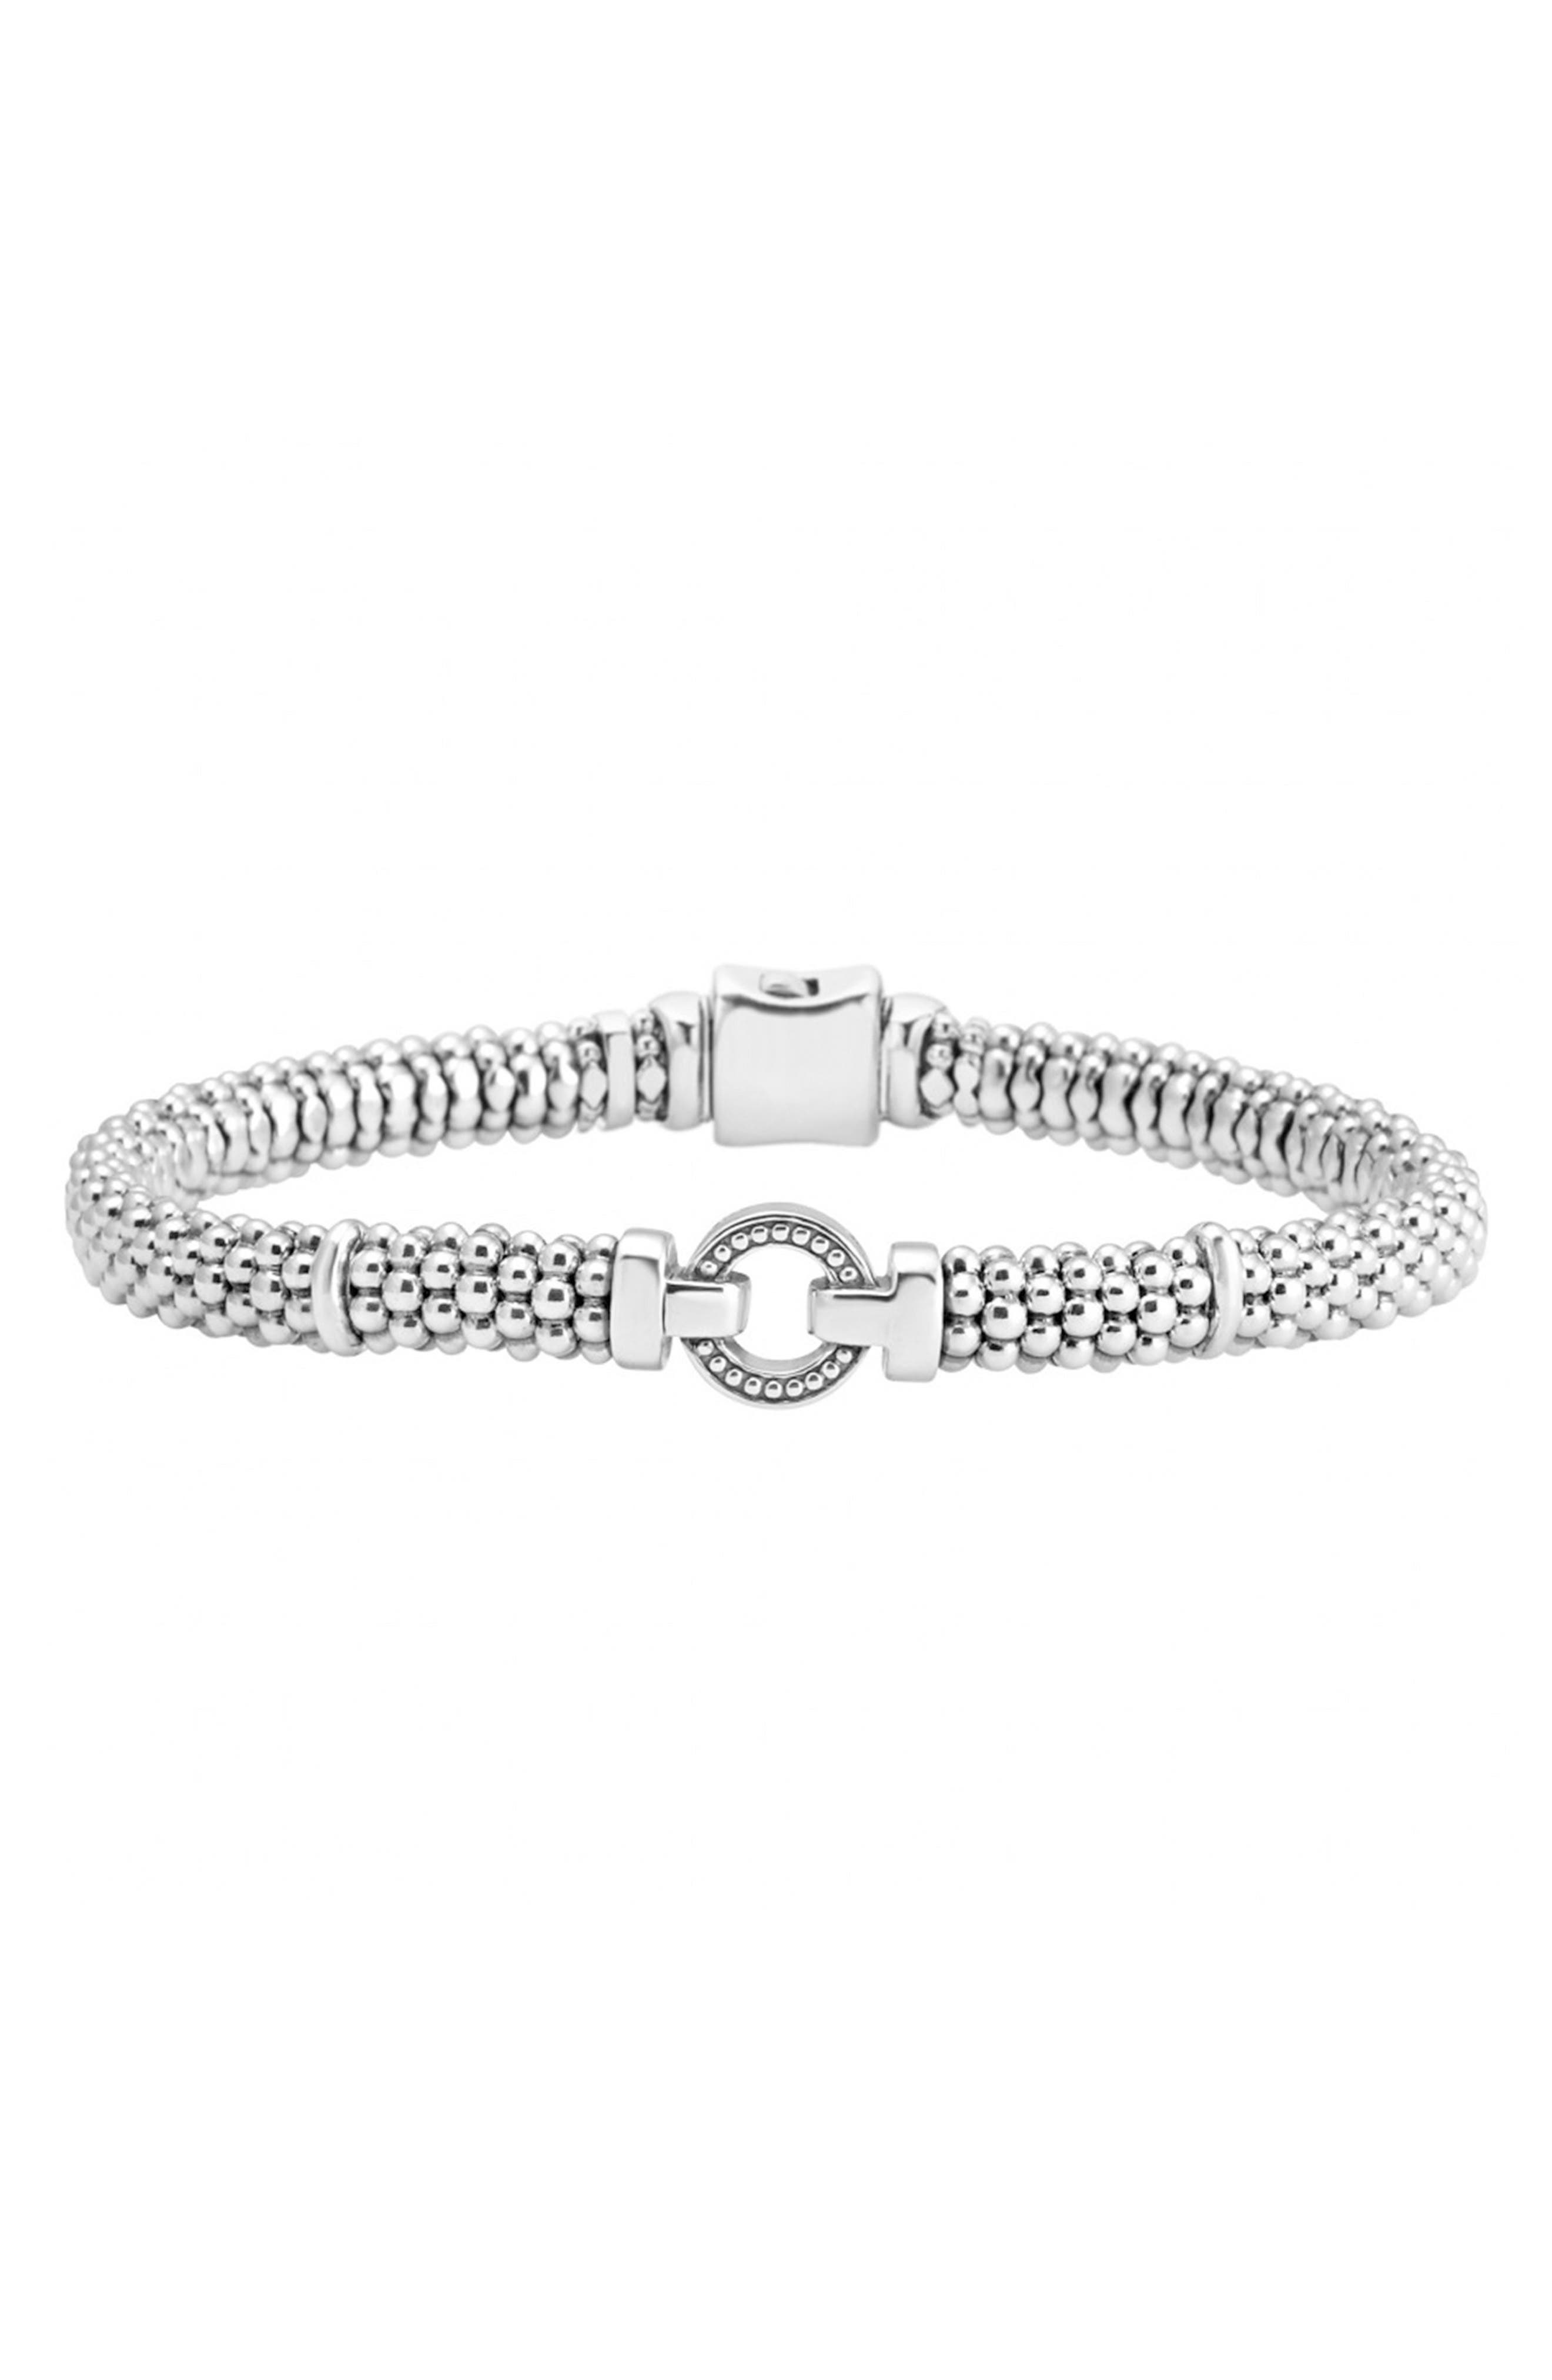 Enso Boxed Circle Station Caviar Rope Bracelet,                             Main thumbnail 1, color,                             Sterling Silver